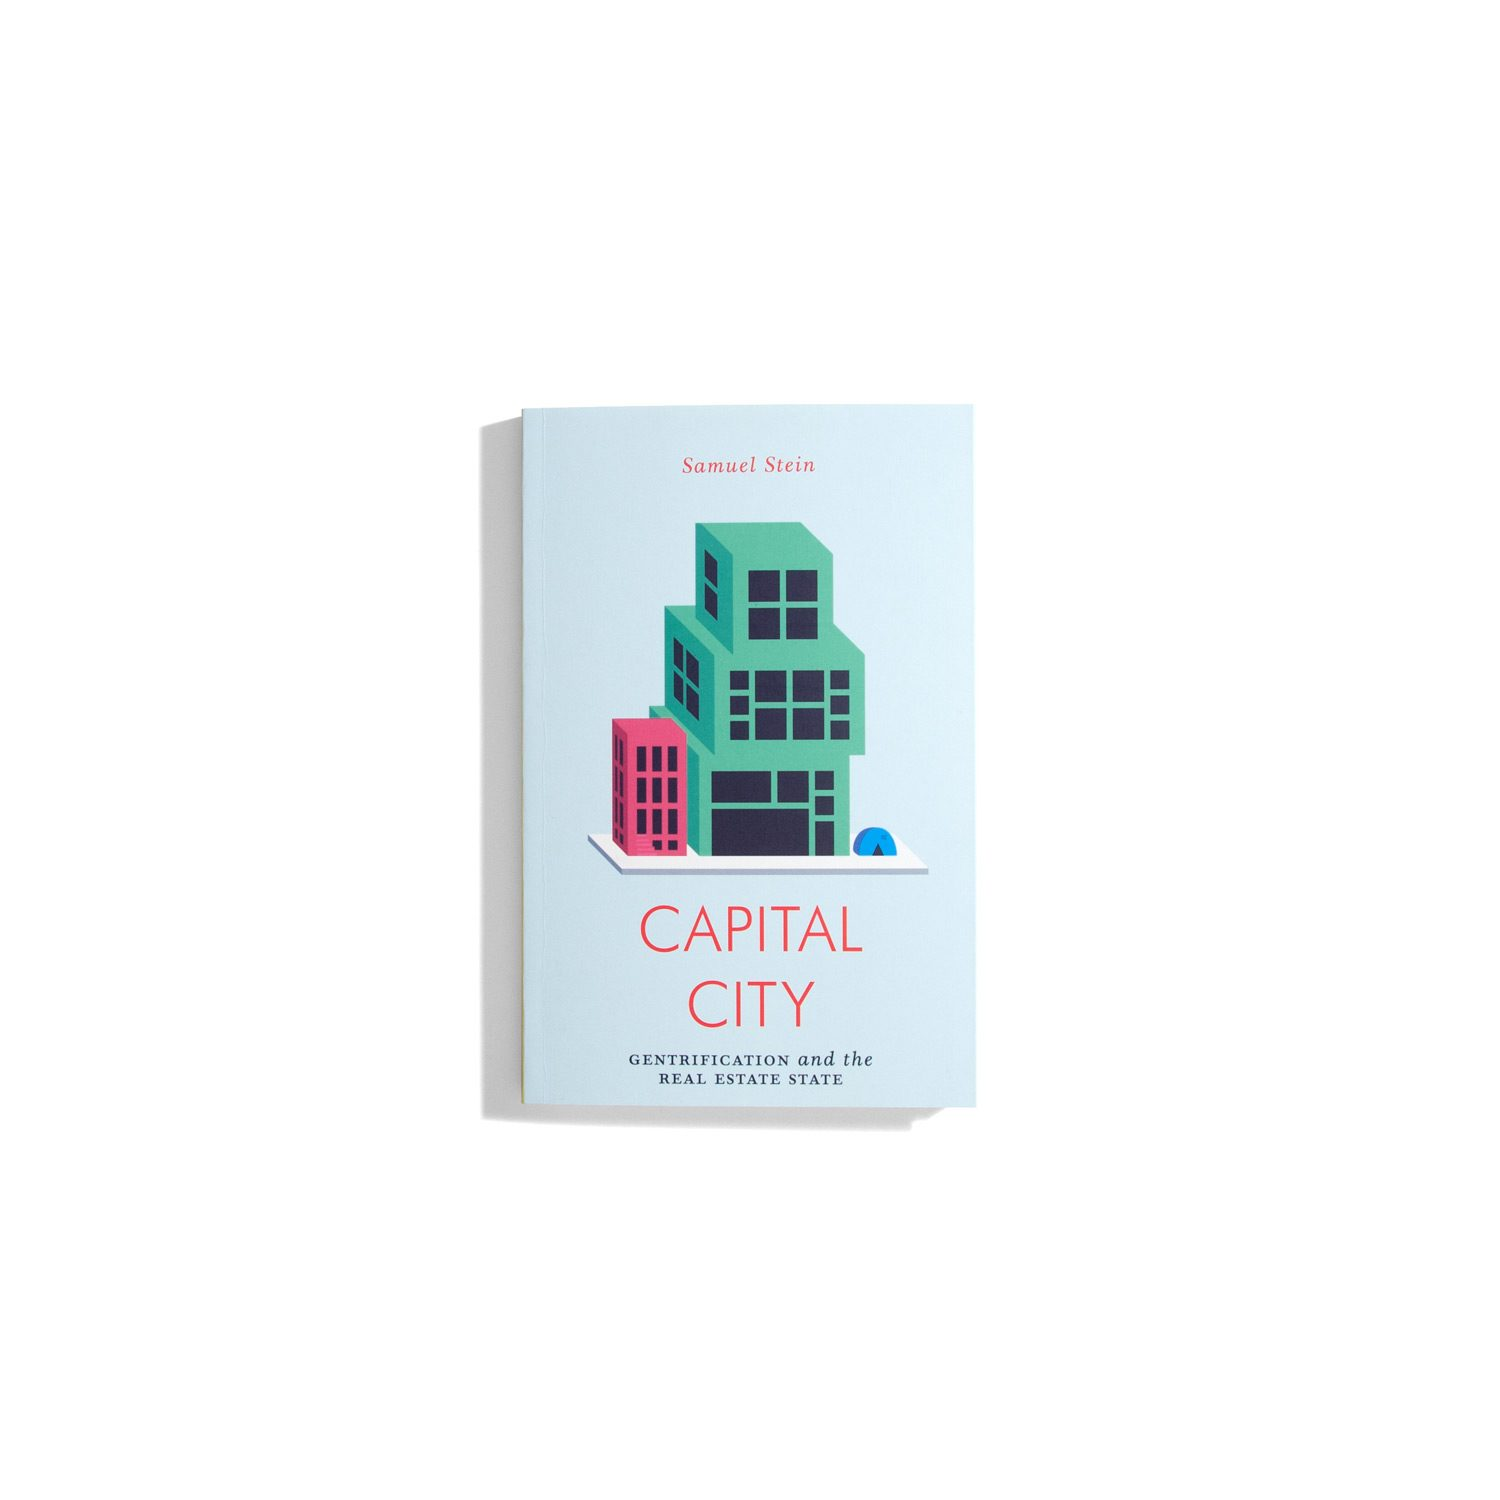 Capital City - Gentrification and the Real Estate State - Samuel Stein